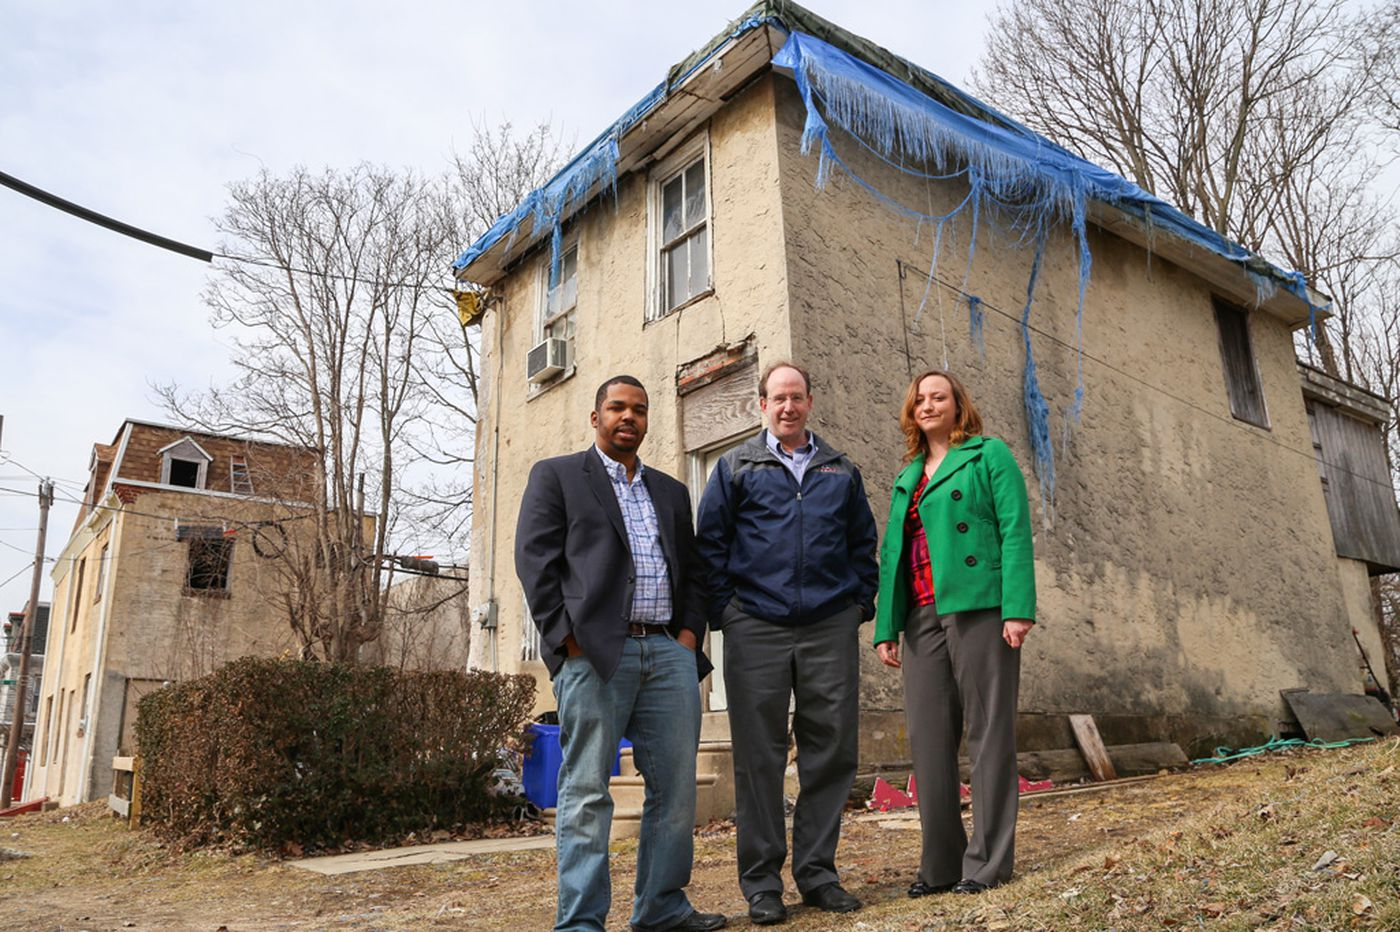 Effort to help rehab Germantown housing